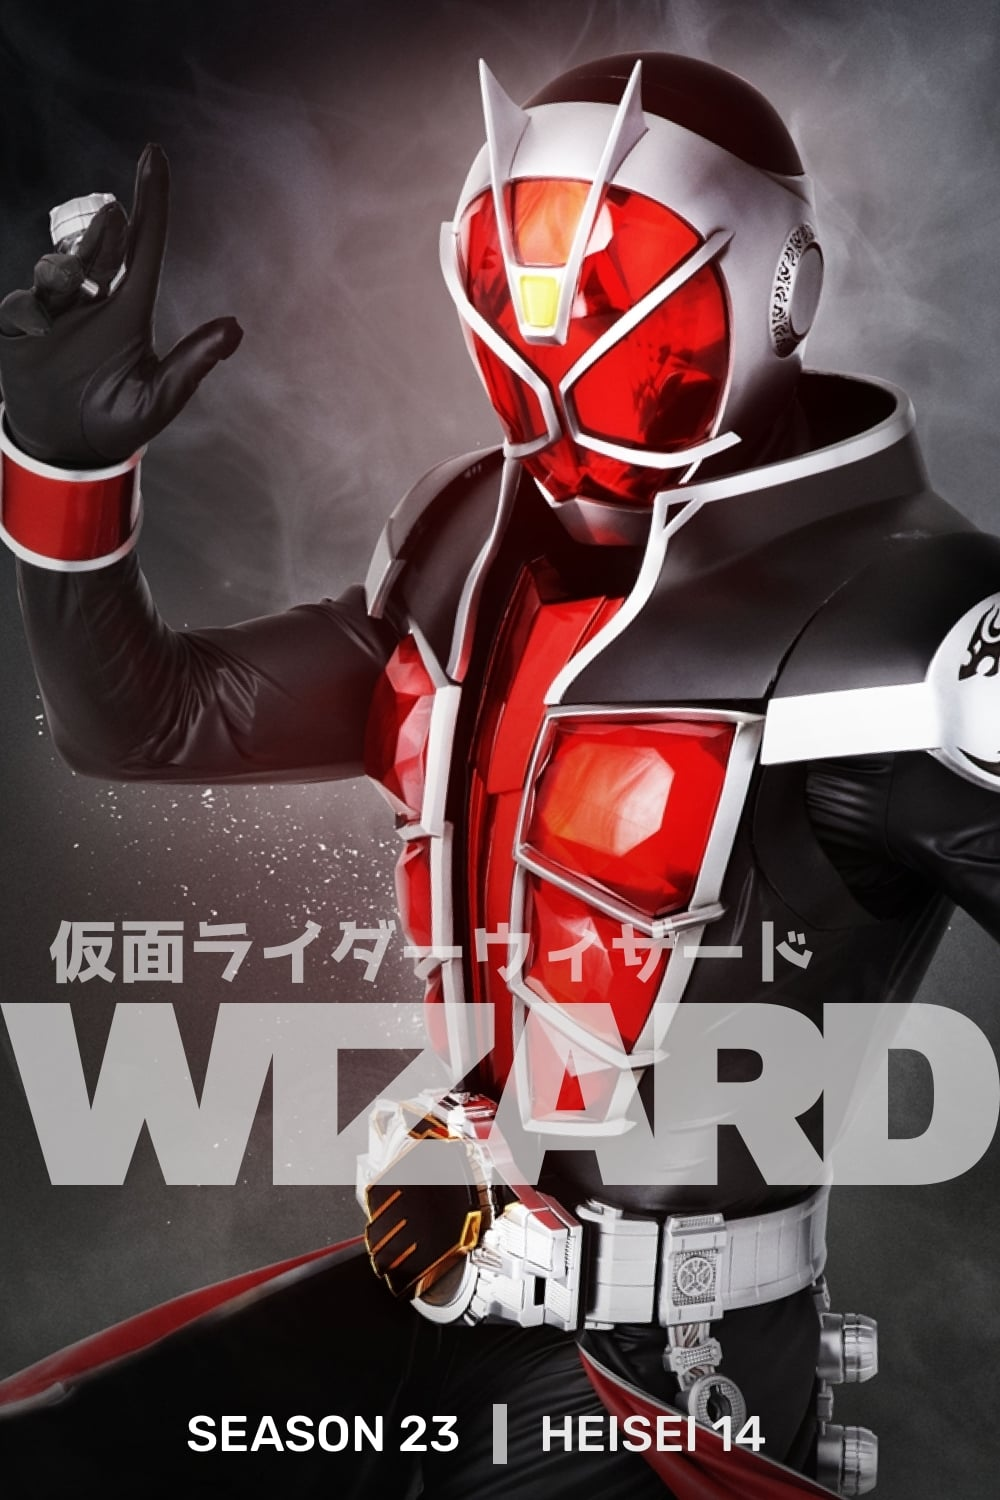 Kamen Rider - Season 21 Episode 35 : Dreams, Brother, Birth's Secret Season 23